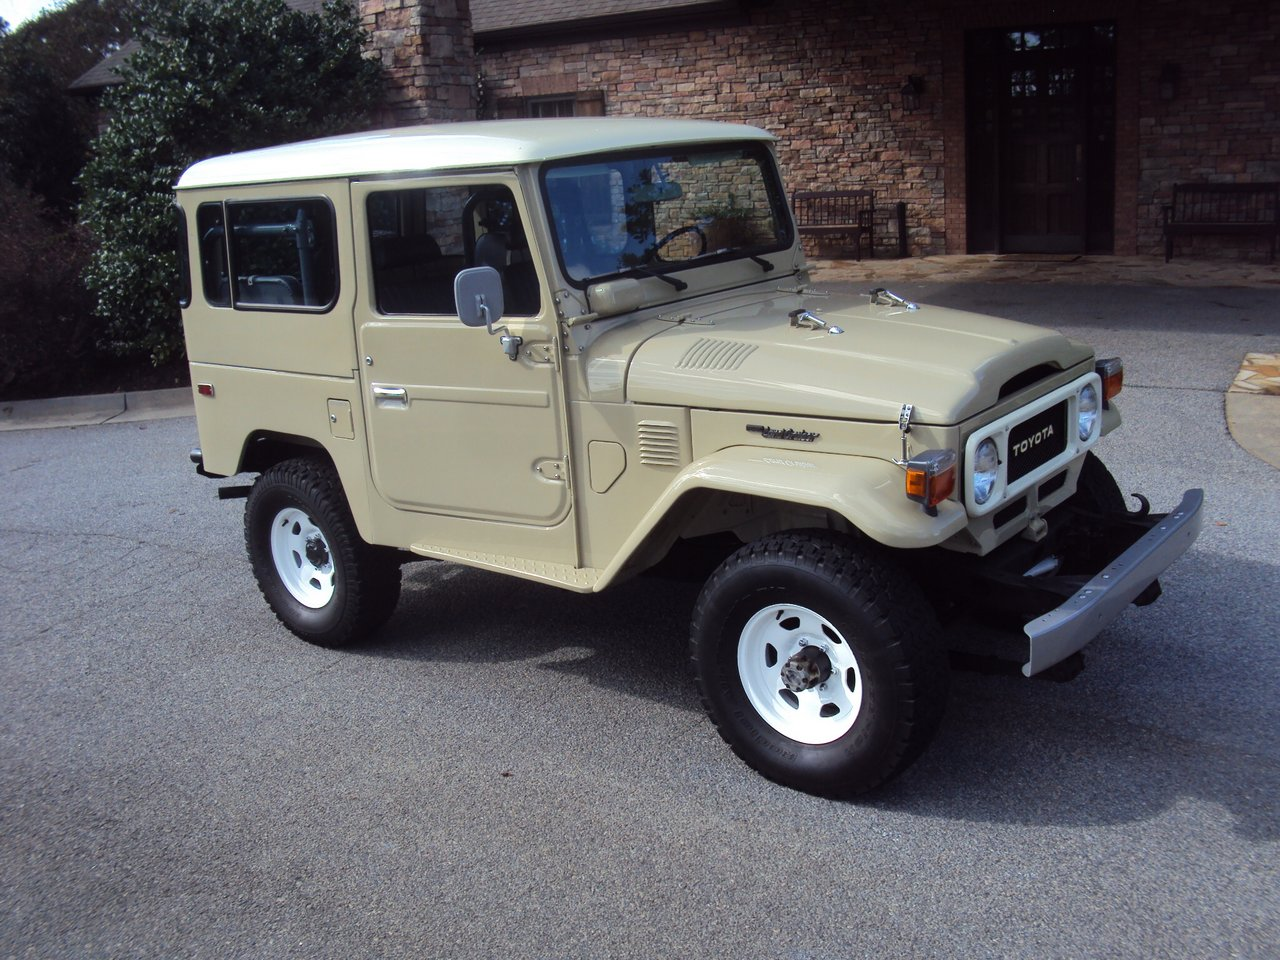 1982 Toyota Land Cruiser FJ40 – full frame-off restoration | Second